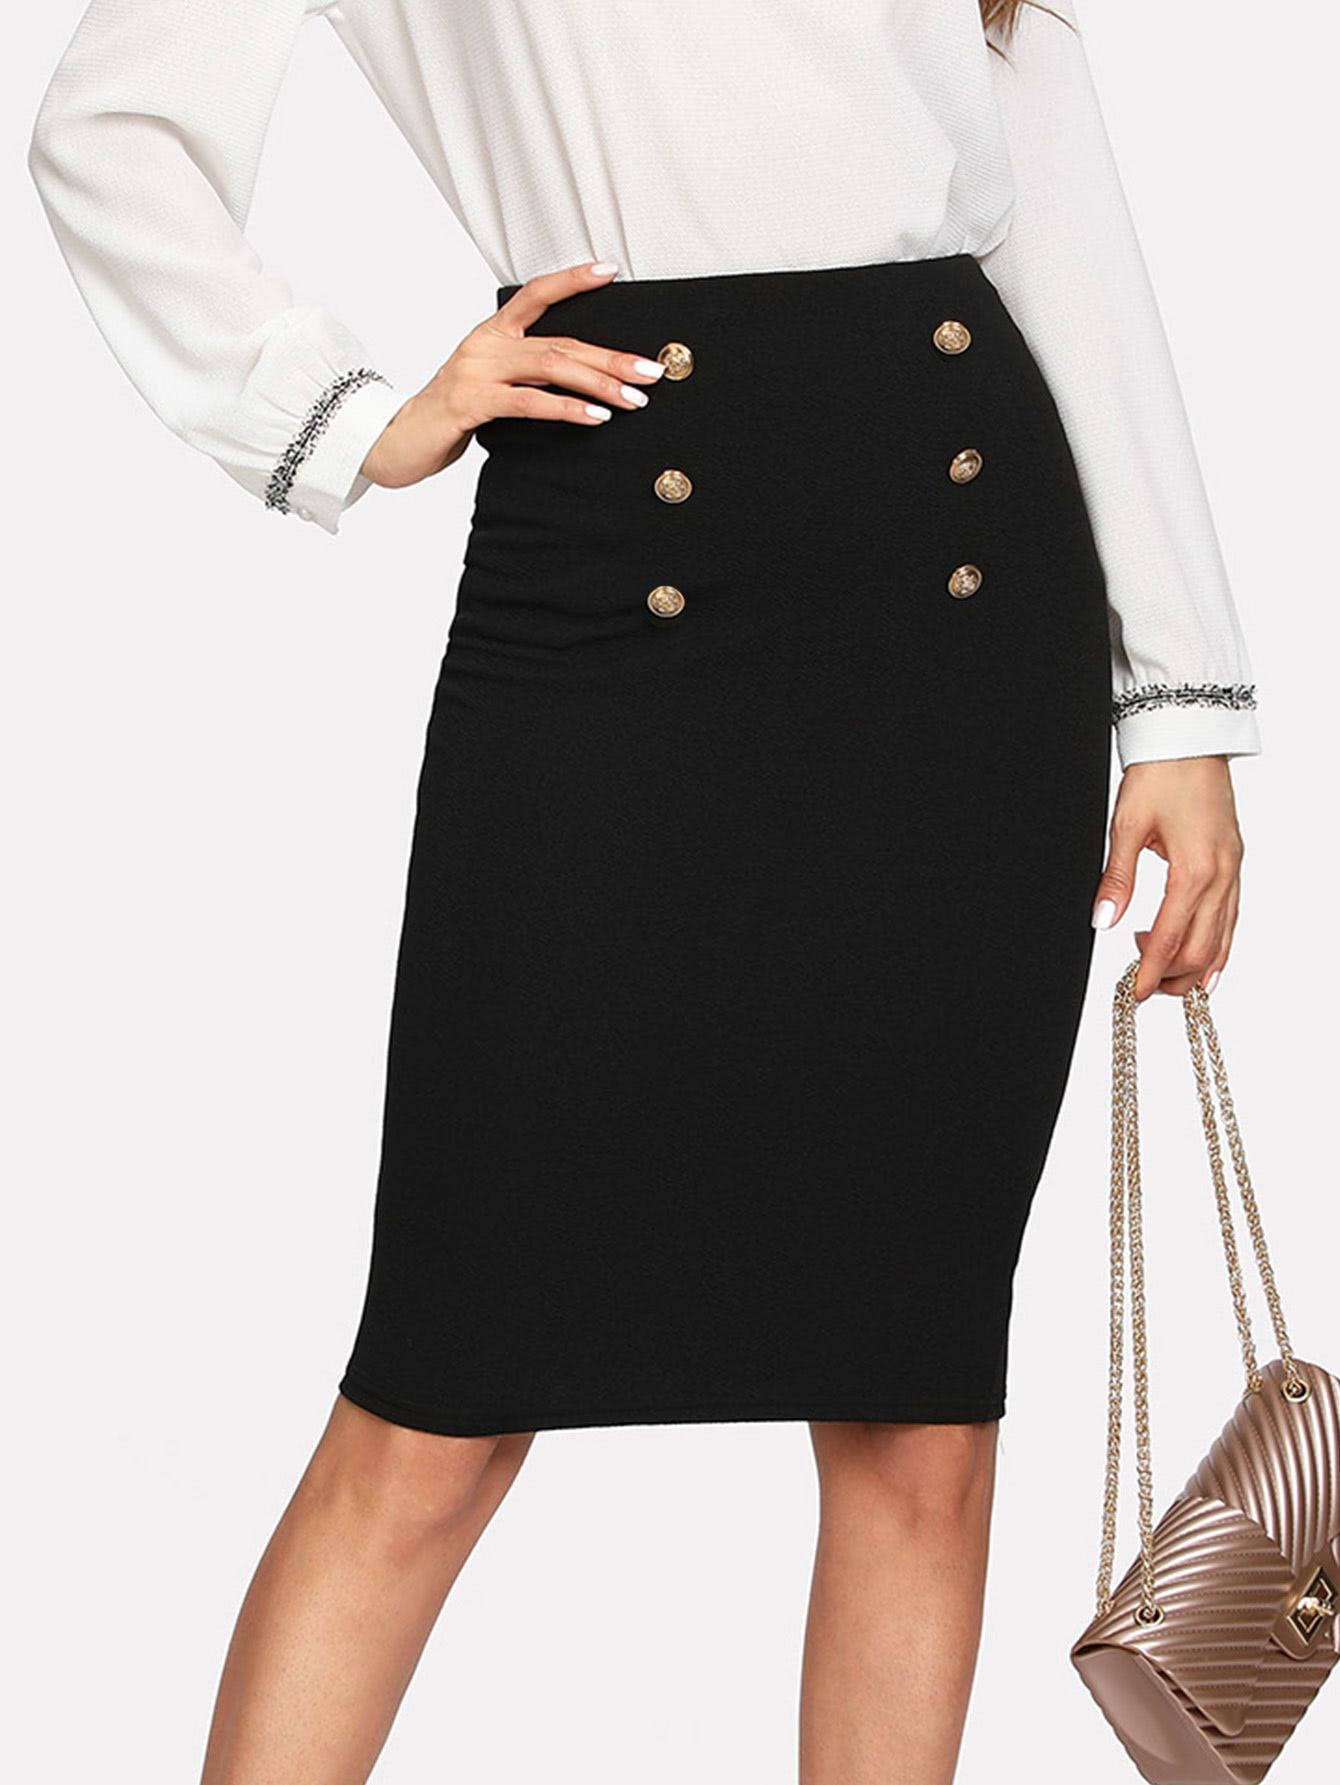 03a37c62787b Shop Double Button Pencil Skirt online. SheIn offers Double Button Pencil  Skirt & more to fit your fashionable needs.